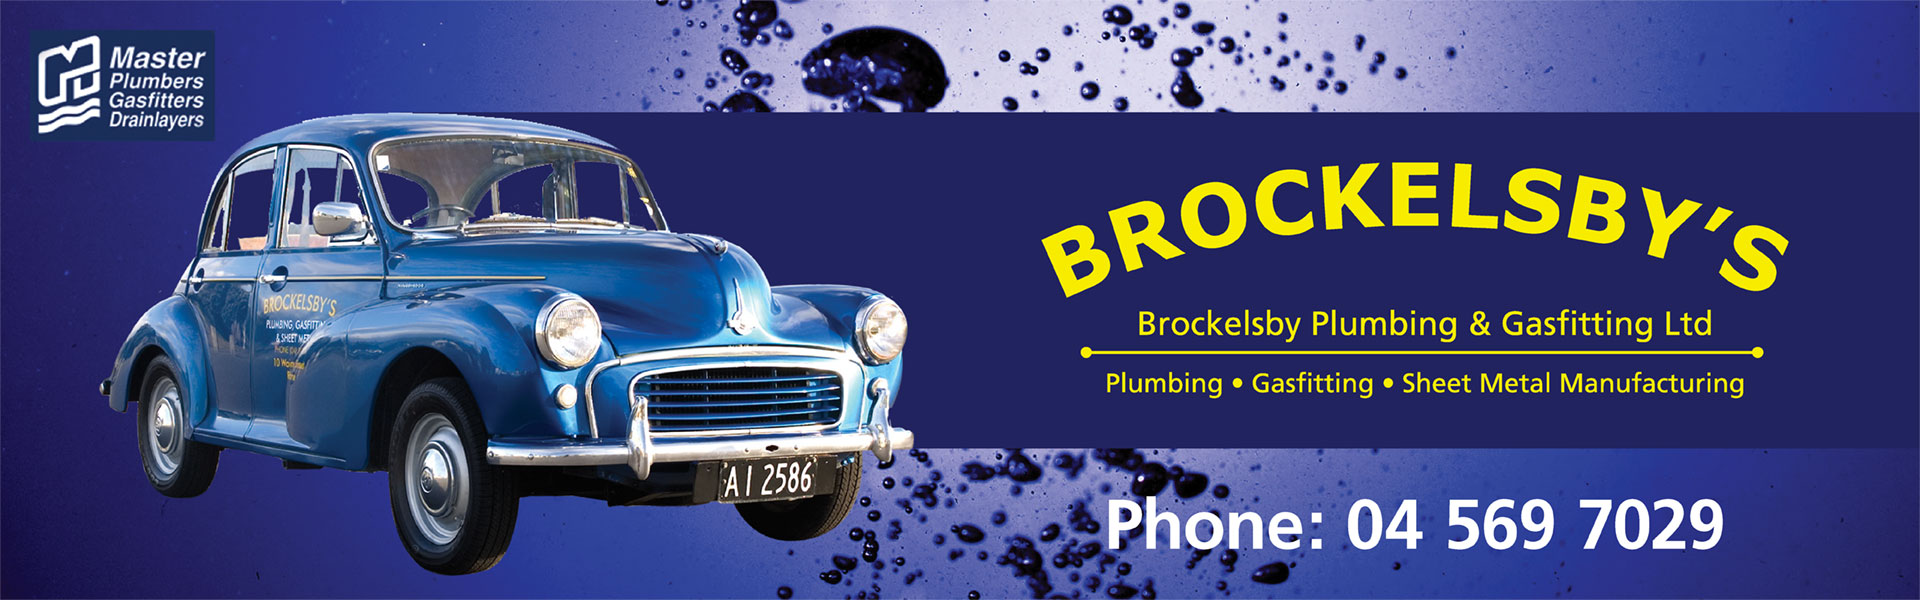 Brockelsby Plumbing Wellington NZ